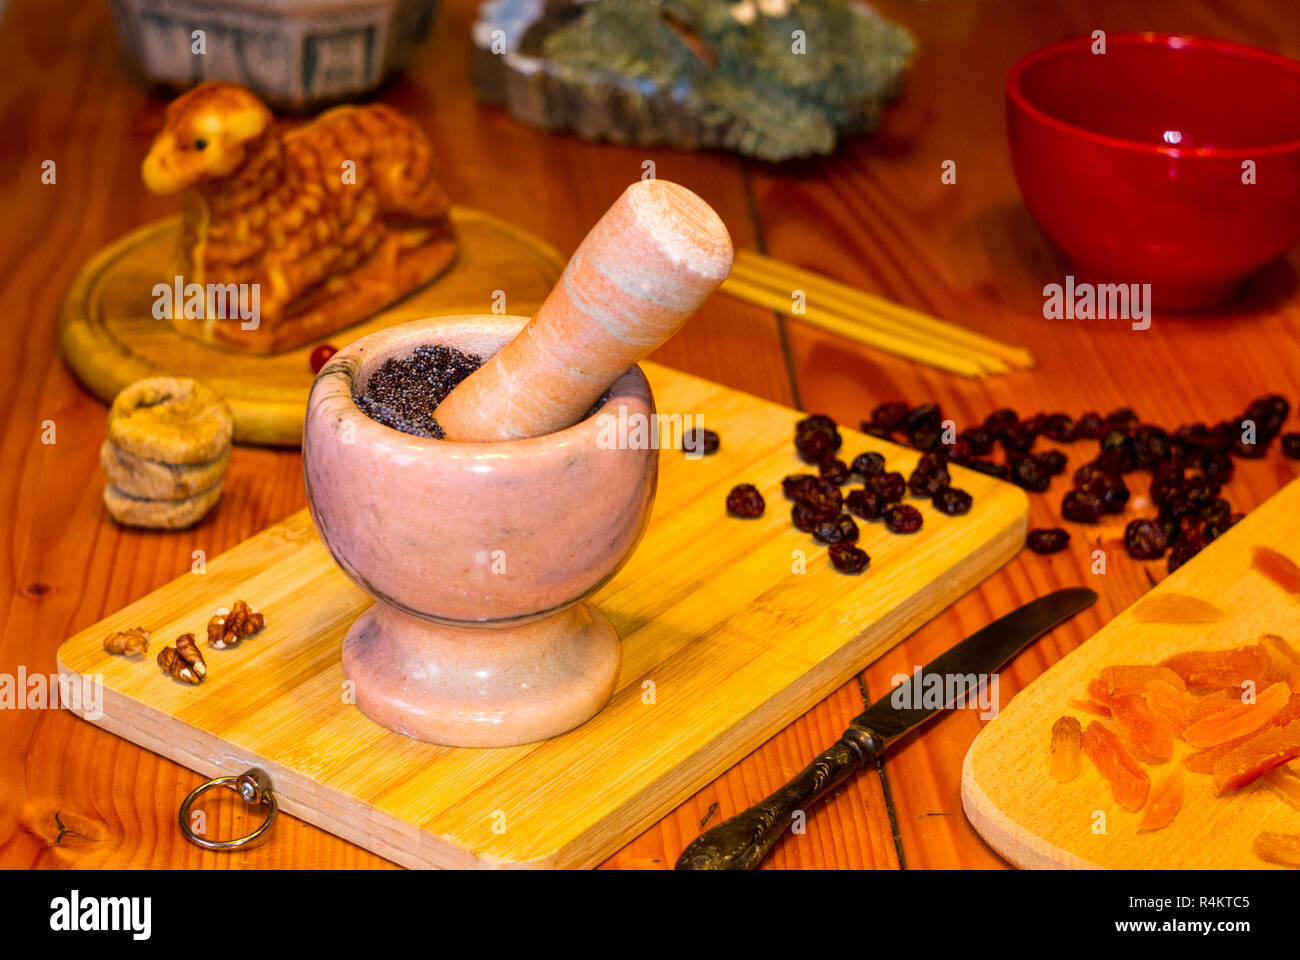 preparation of treats for traditional Orthodox Christmas - handmade baked cookies in the form of lambkin, dried fruits, cranberries, honey, nuts, rice - Stock Image